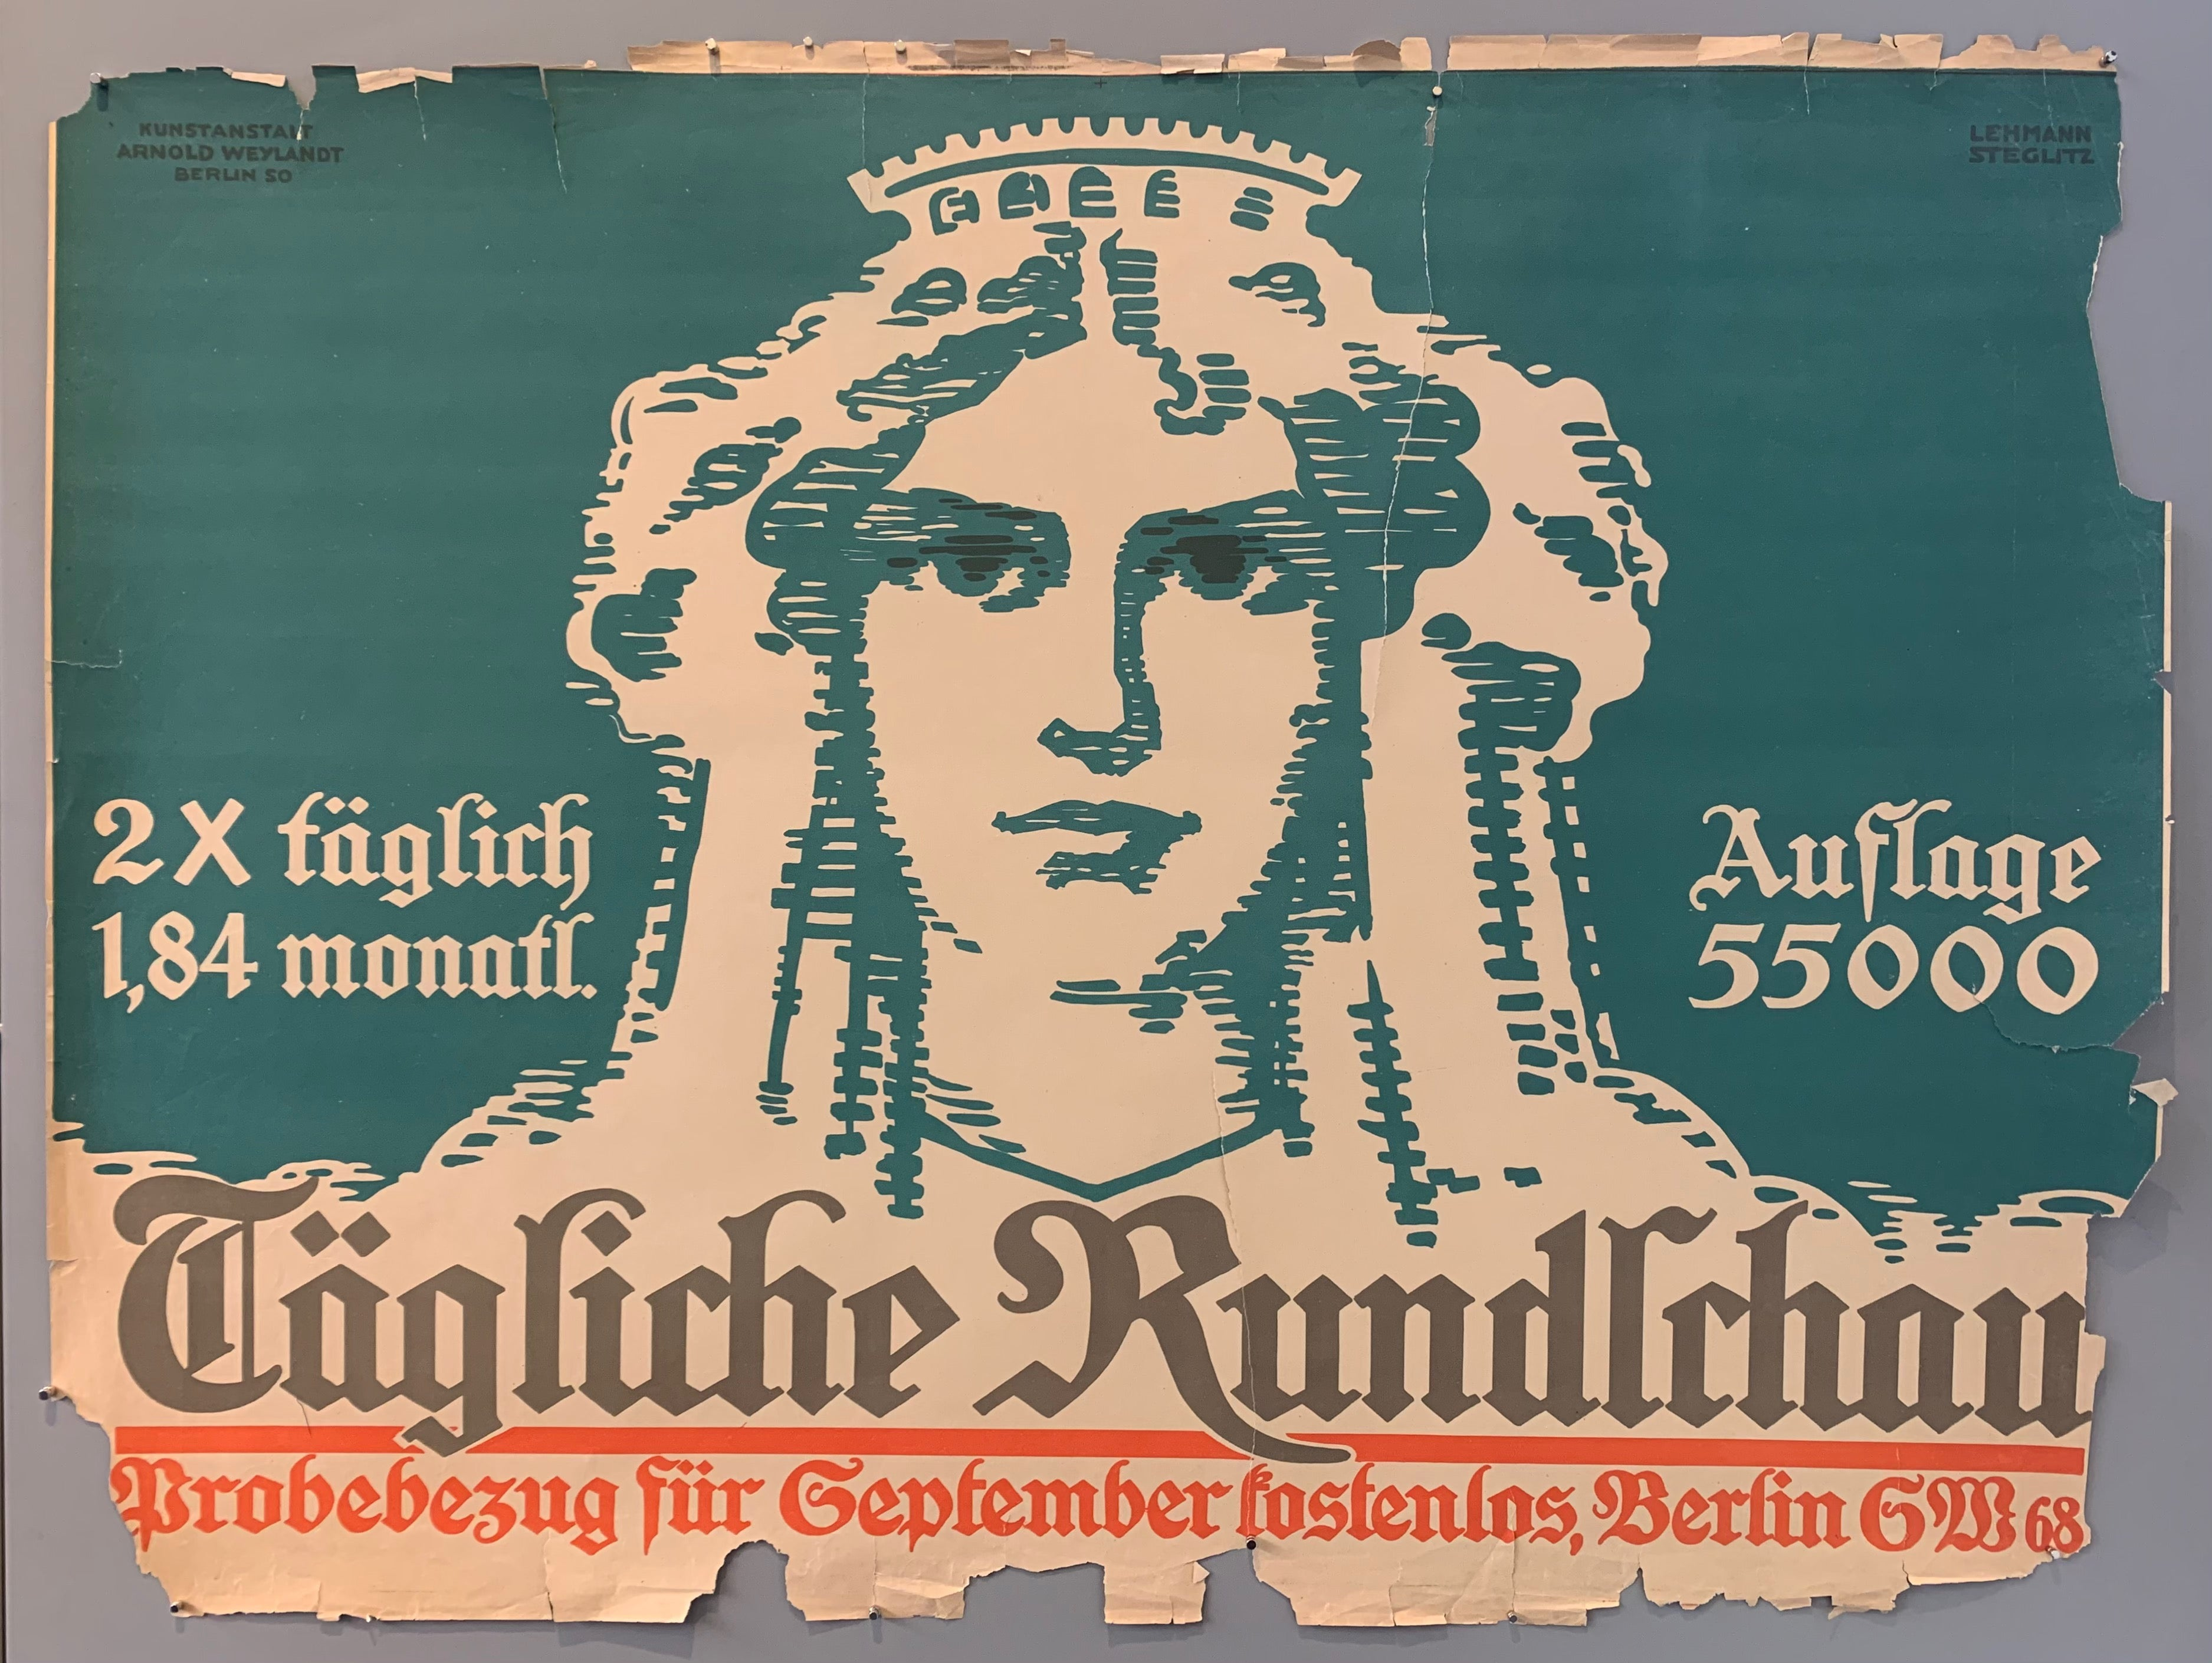 The daily Rundschau was a newspaper published from 1945 to 1955. It was published in Berlin by the Soviet army in the Soviet occupation zone. This poster advertises sample purchases in september for free, with a woman in the middle. Background is turquoise with red and white text.